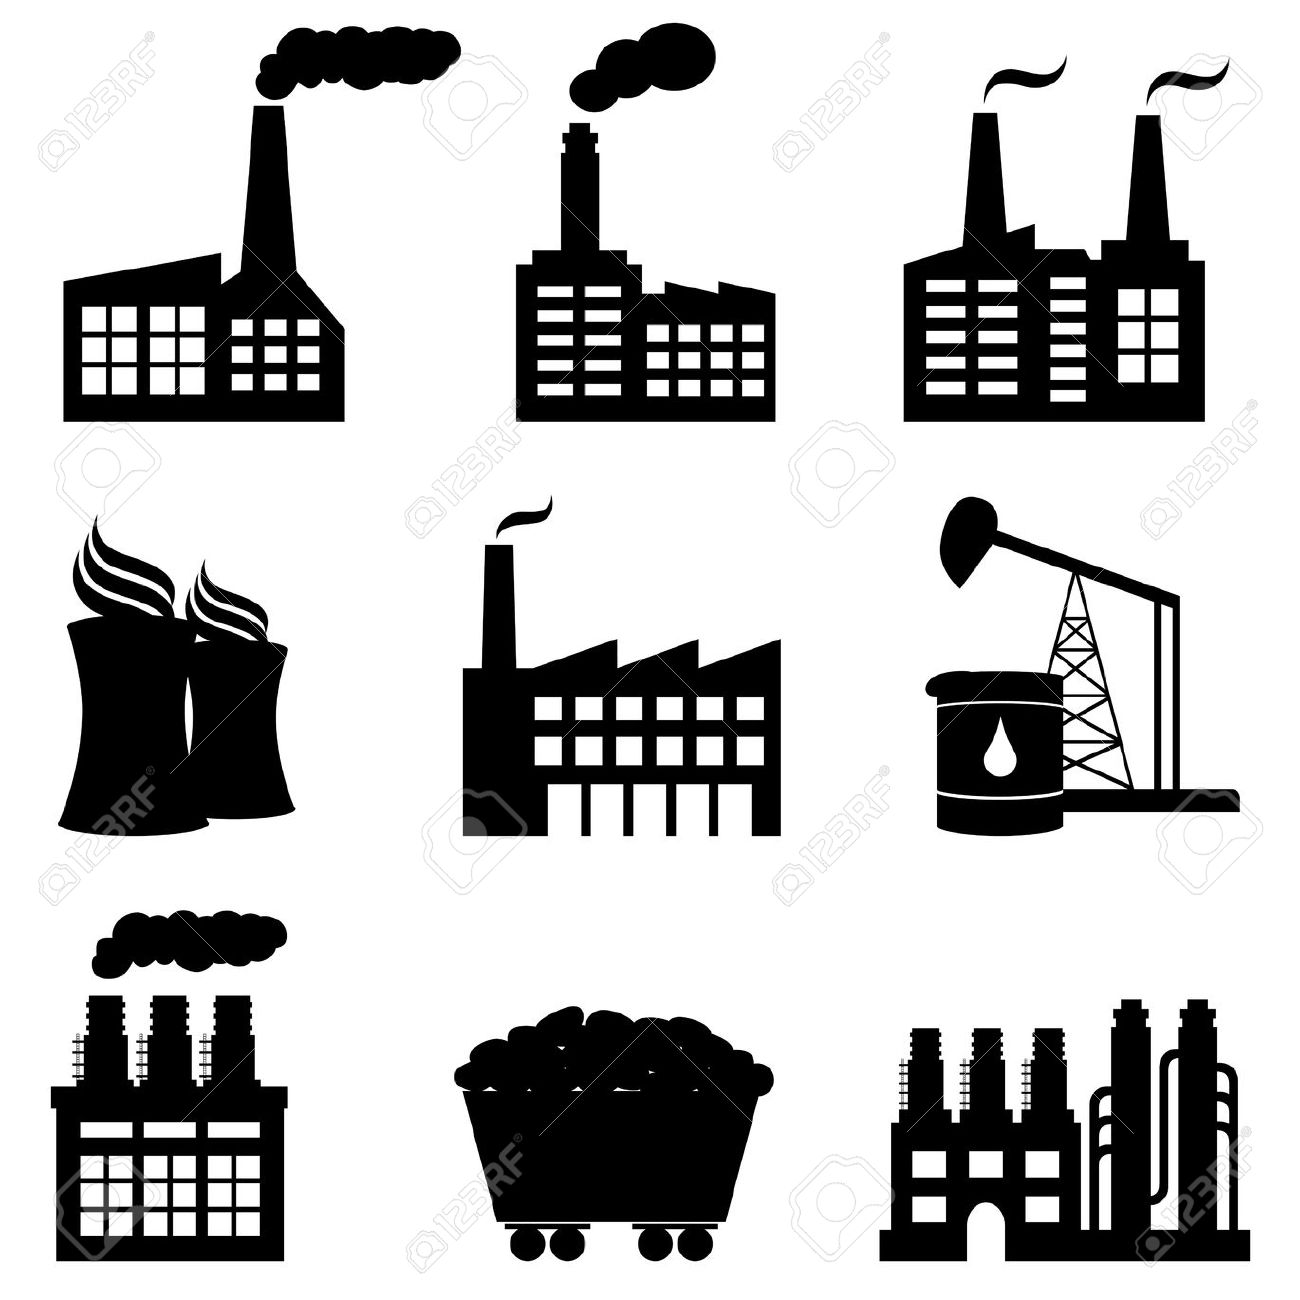 Steam Power Clipart